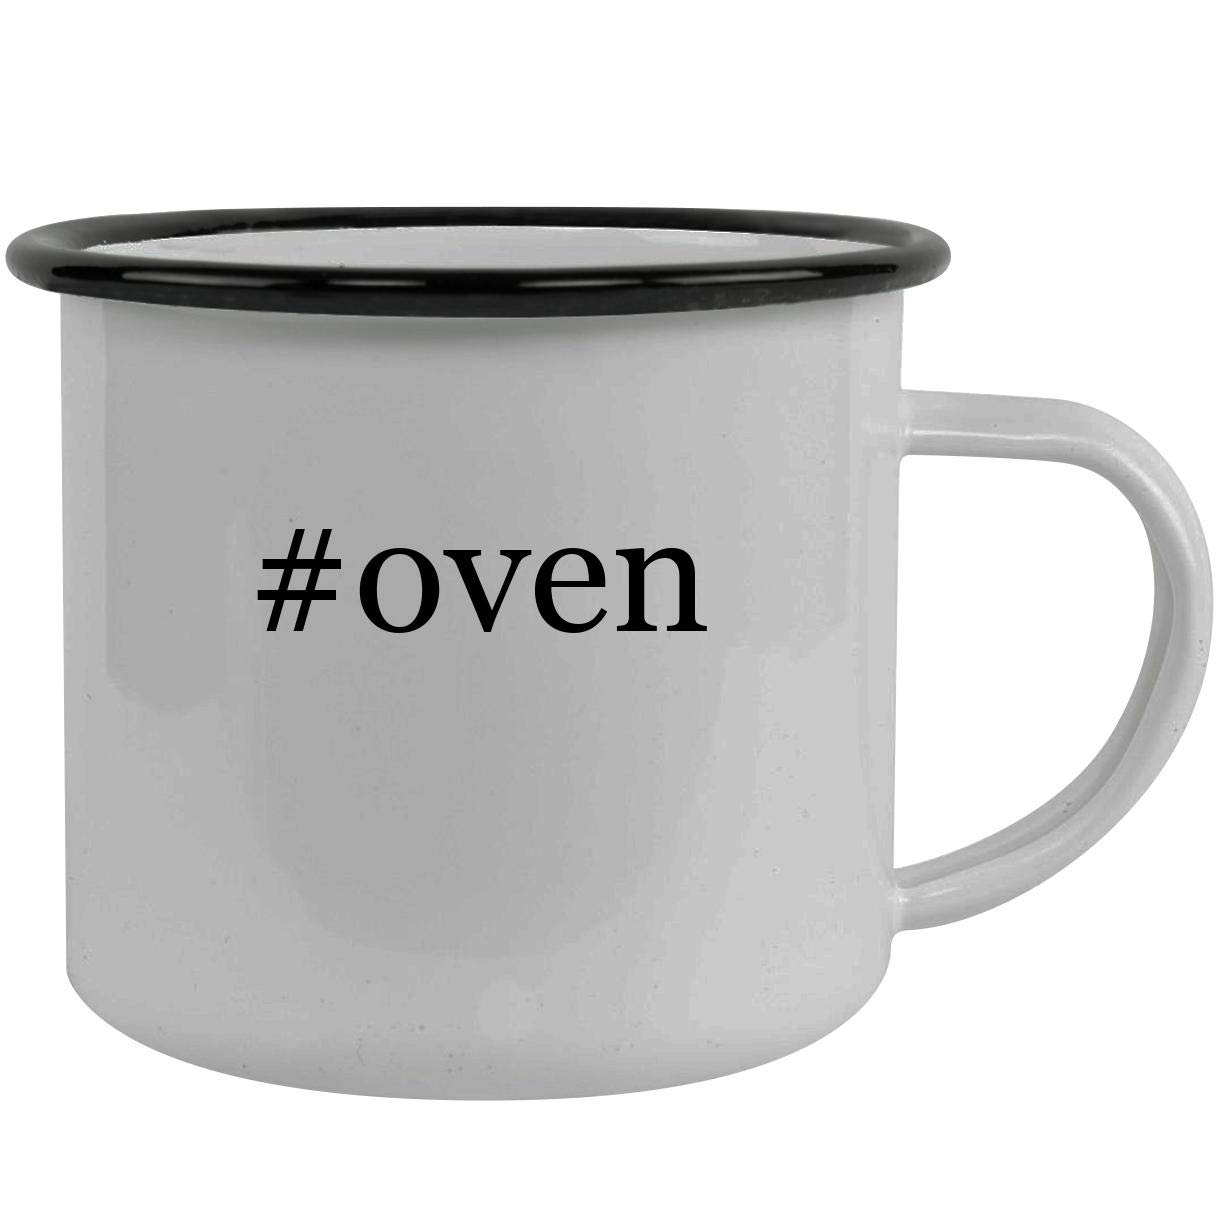 #oven - Stainless Steel Hashtag 12oz Camping Mug, Black